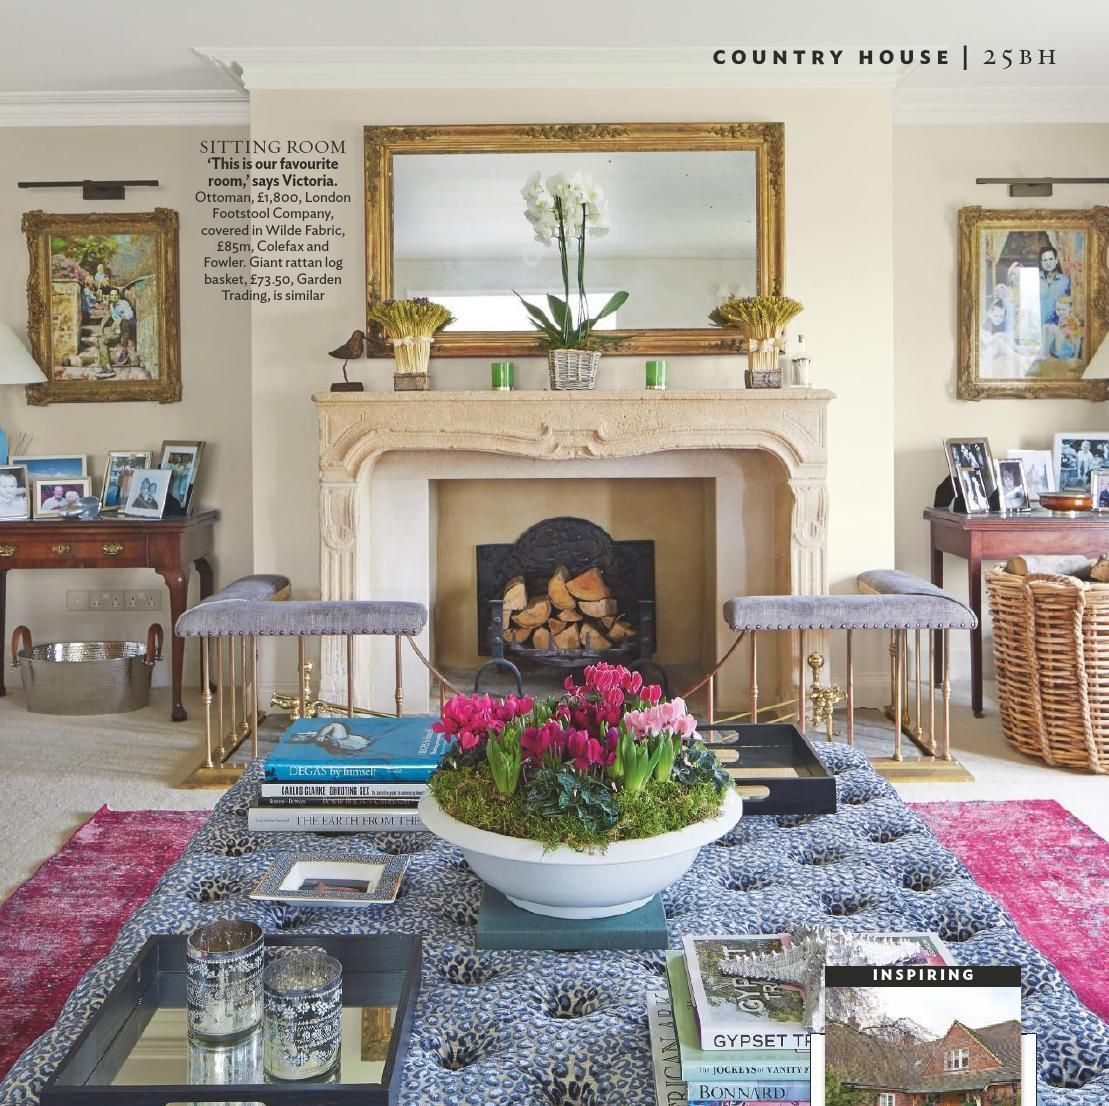 ClippedOnIssuu from 25 beautiful homes march 2015